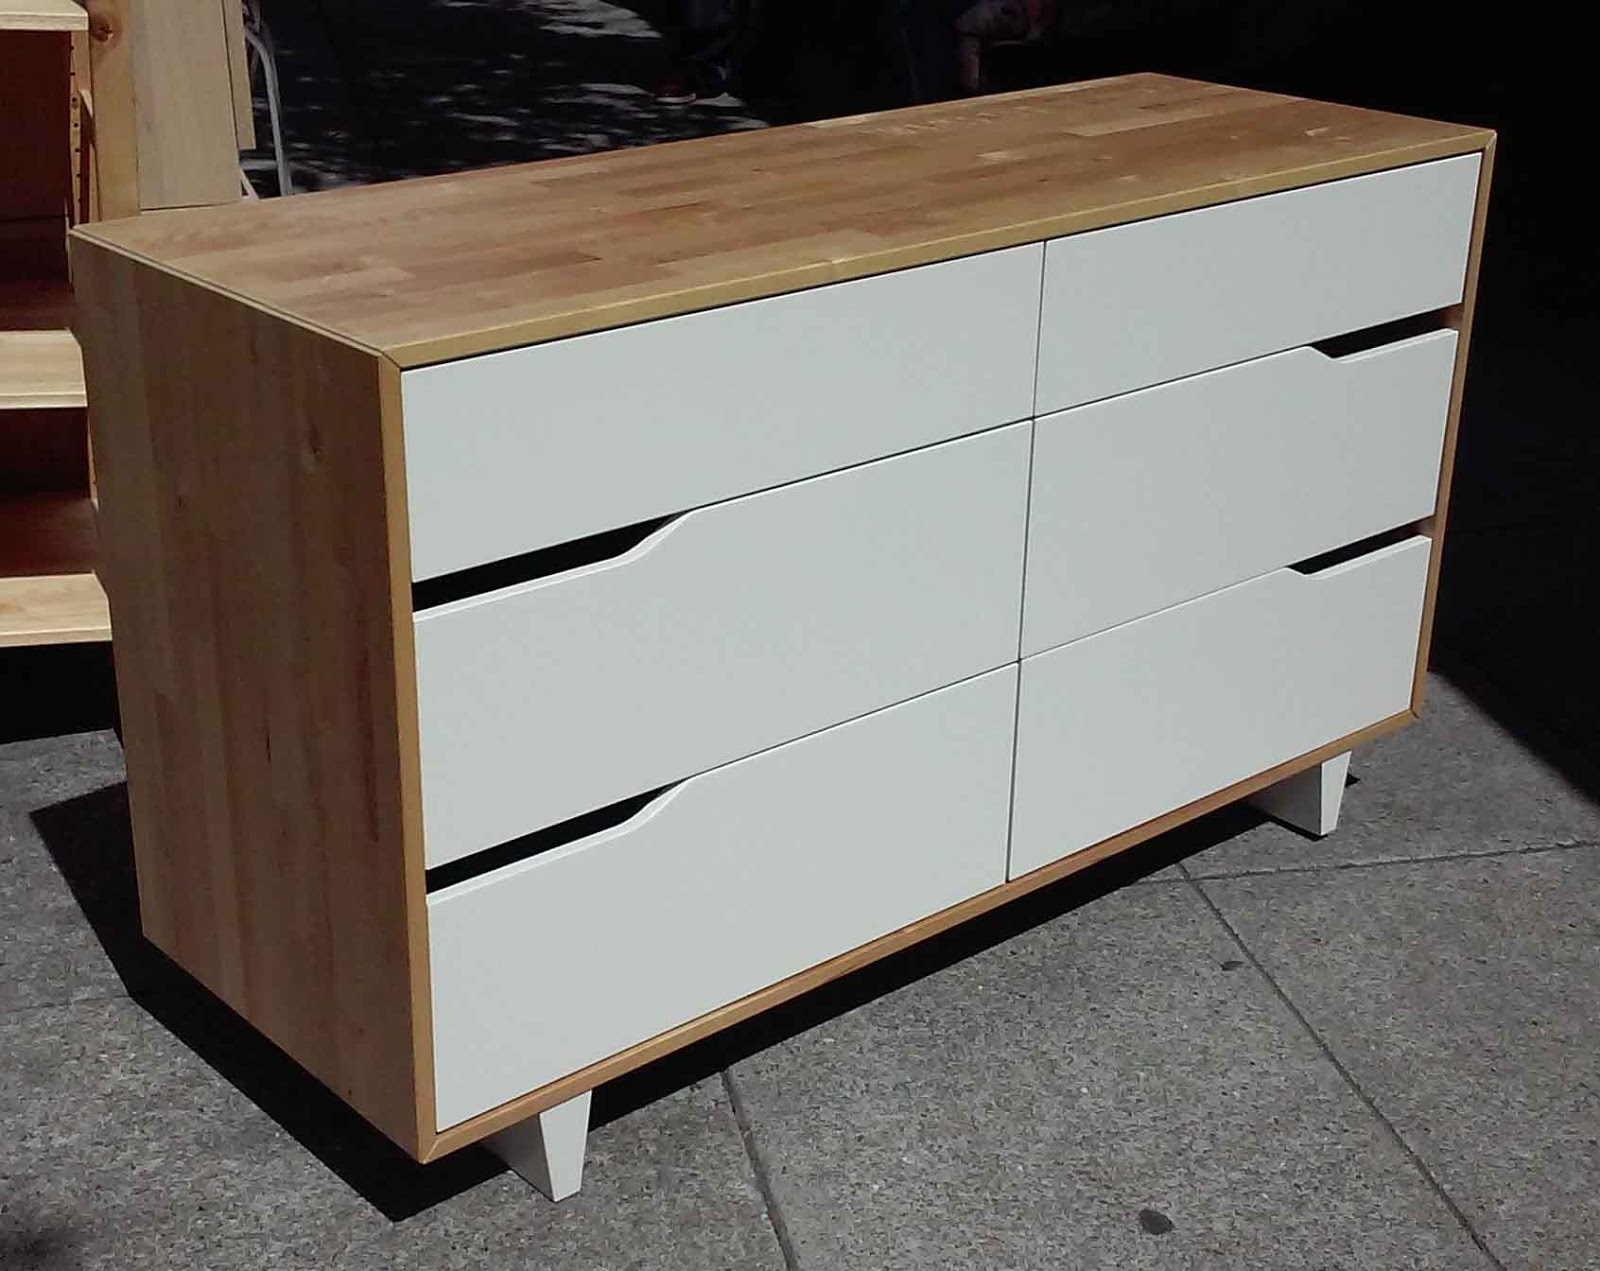 Flächenvorhang Raumteiler Ikea ~   FURNITURE & COLLECTIBLES SOLD Ikea Mandal 6 Drawer Dresser  $95